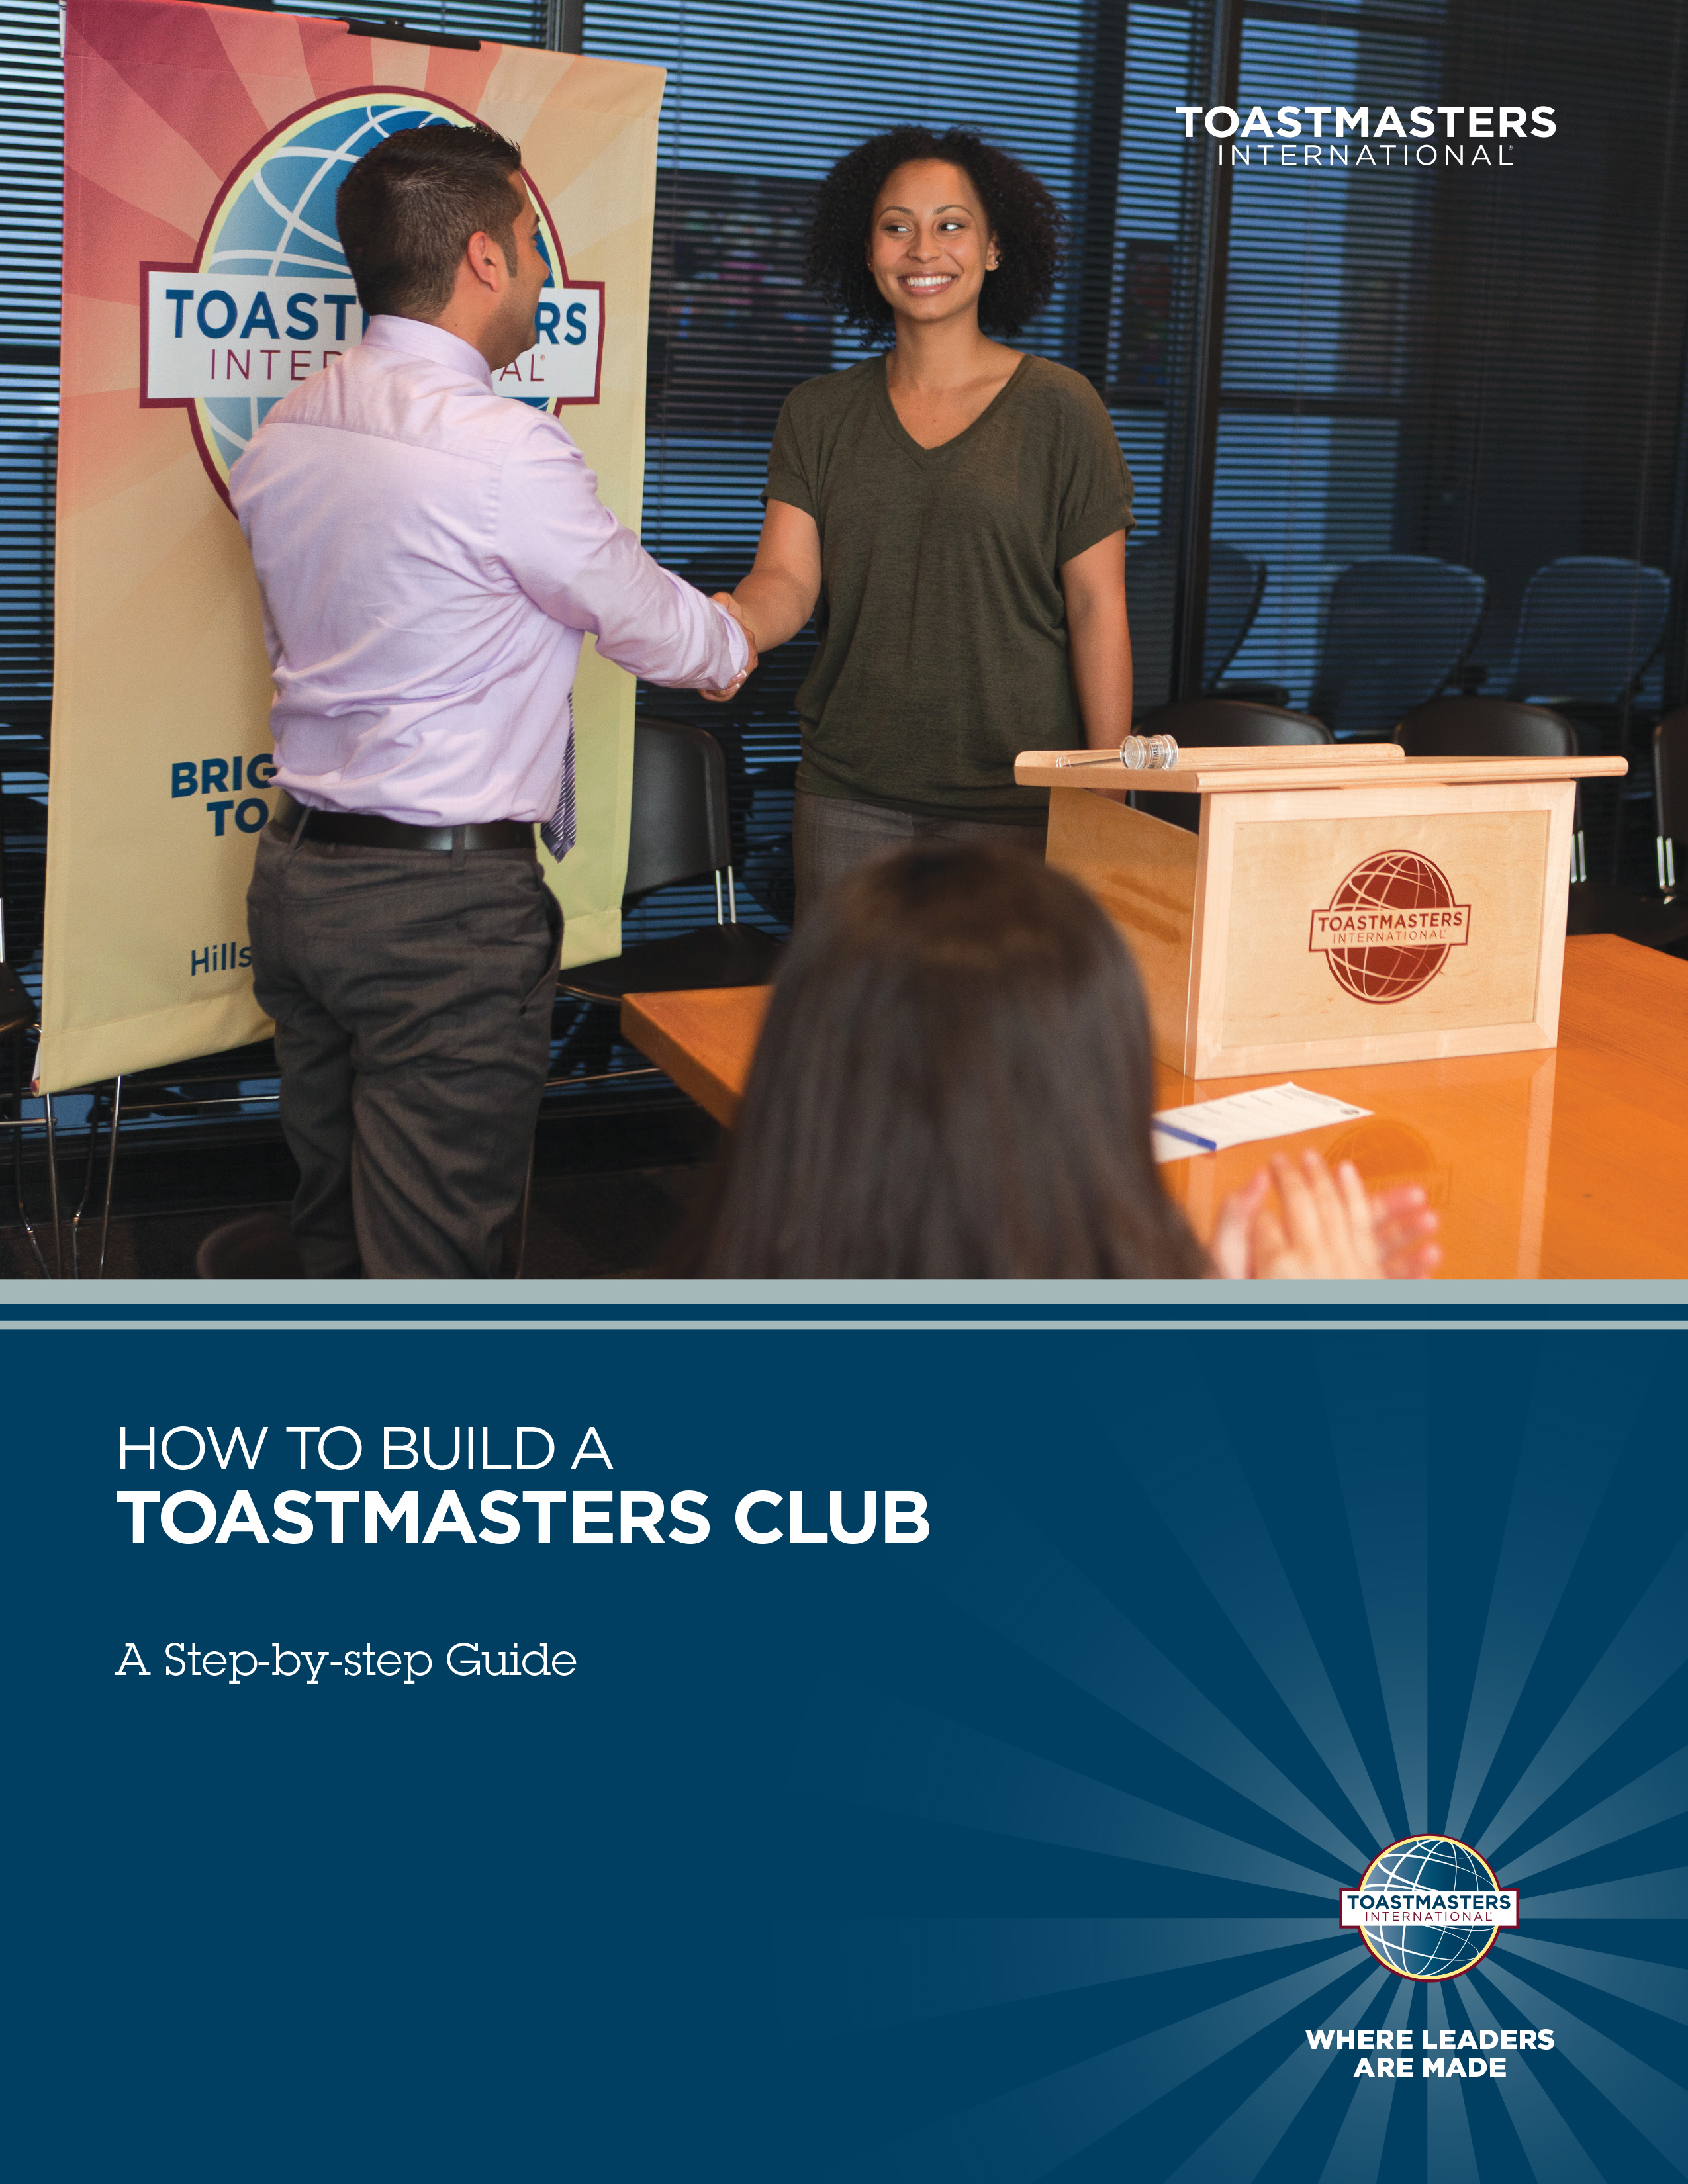 How to Build a Toastmasters Club - A Step-By-Step Guide